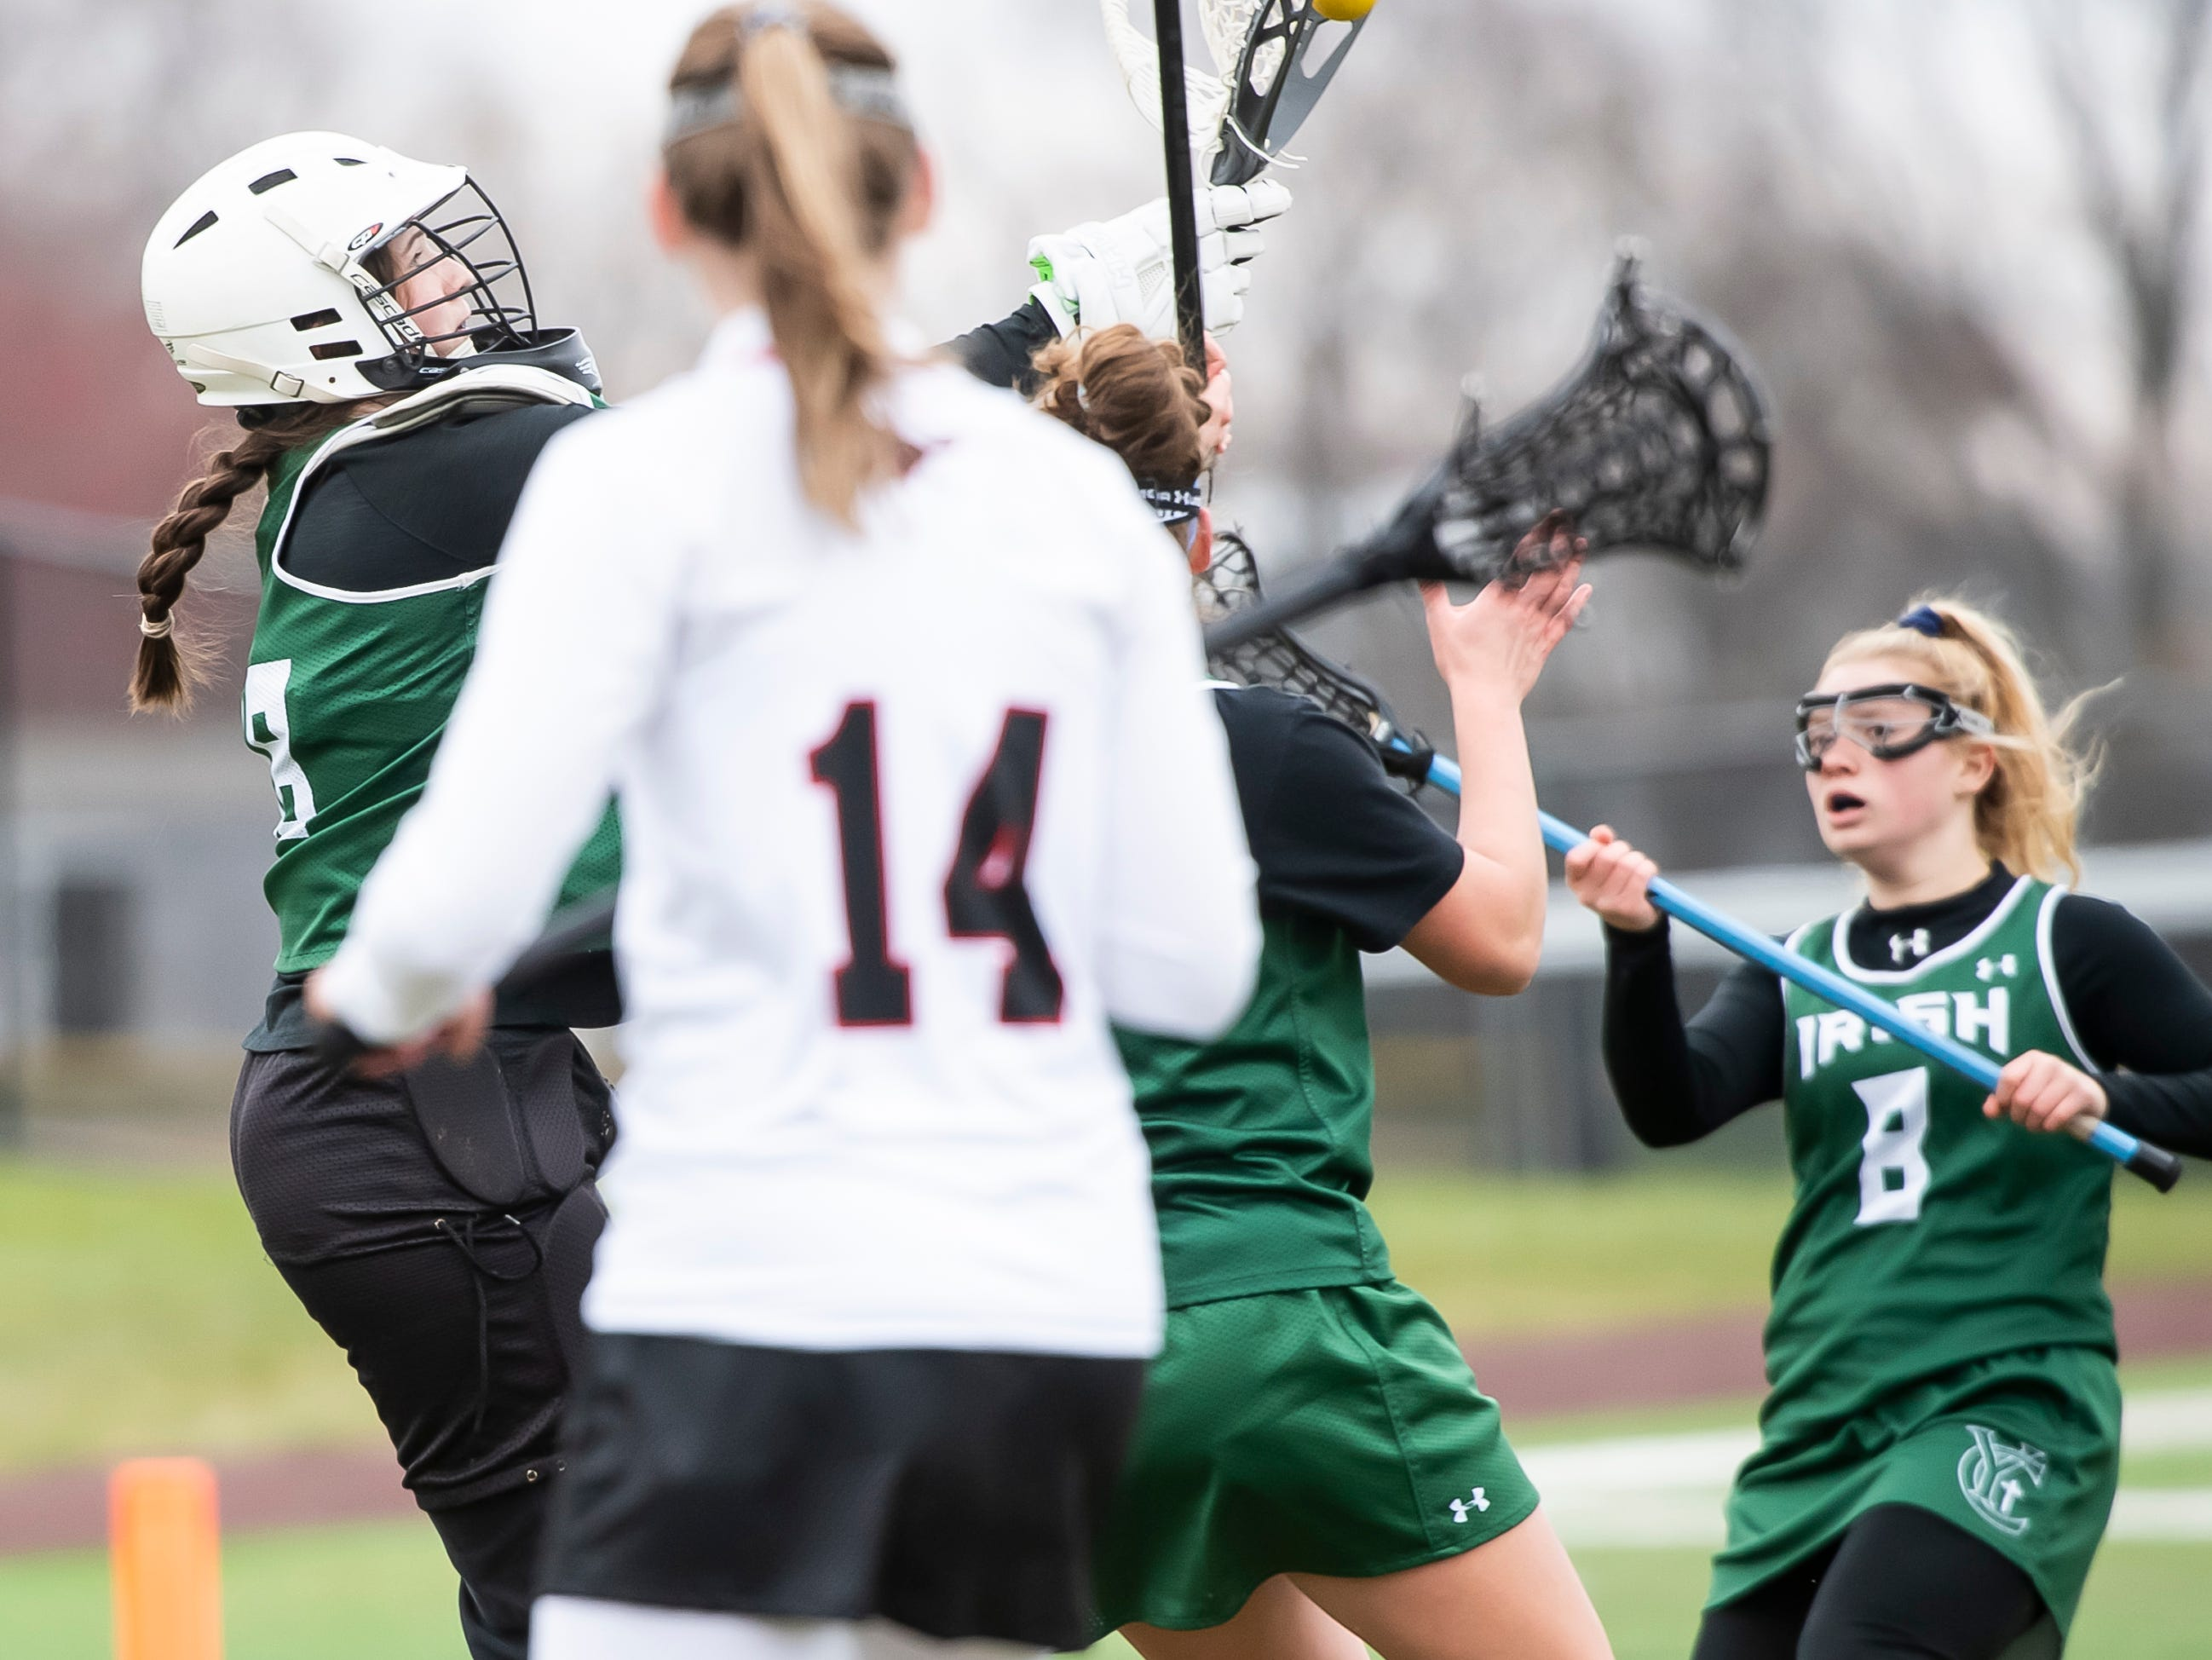 York Catholic goalie Morgan Kilduff makes a save during a YAIAA lacrosse game against South Western on Tuesday, April 2, 2019. Kilduff finished the game with six saves as York Catholic won 19-7 and improved to 5-0.